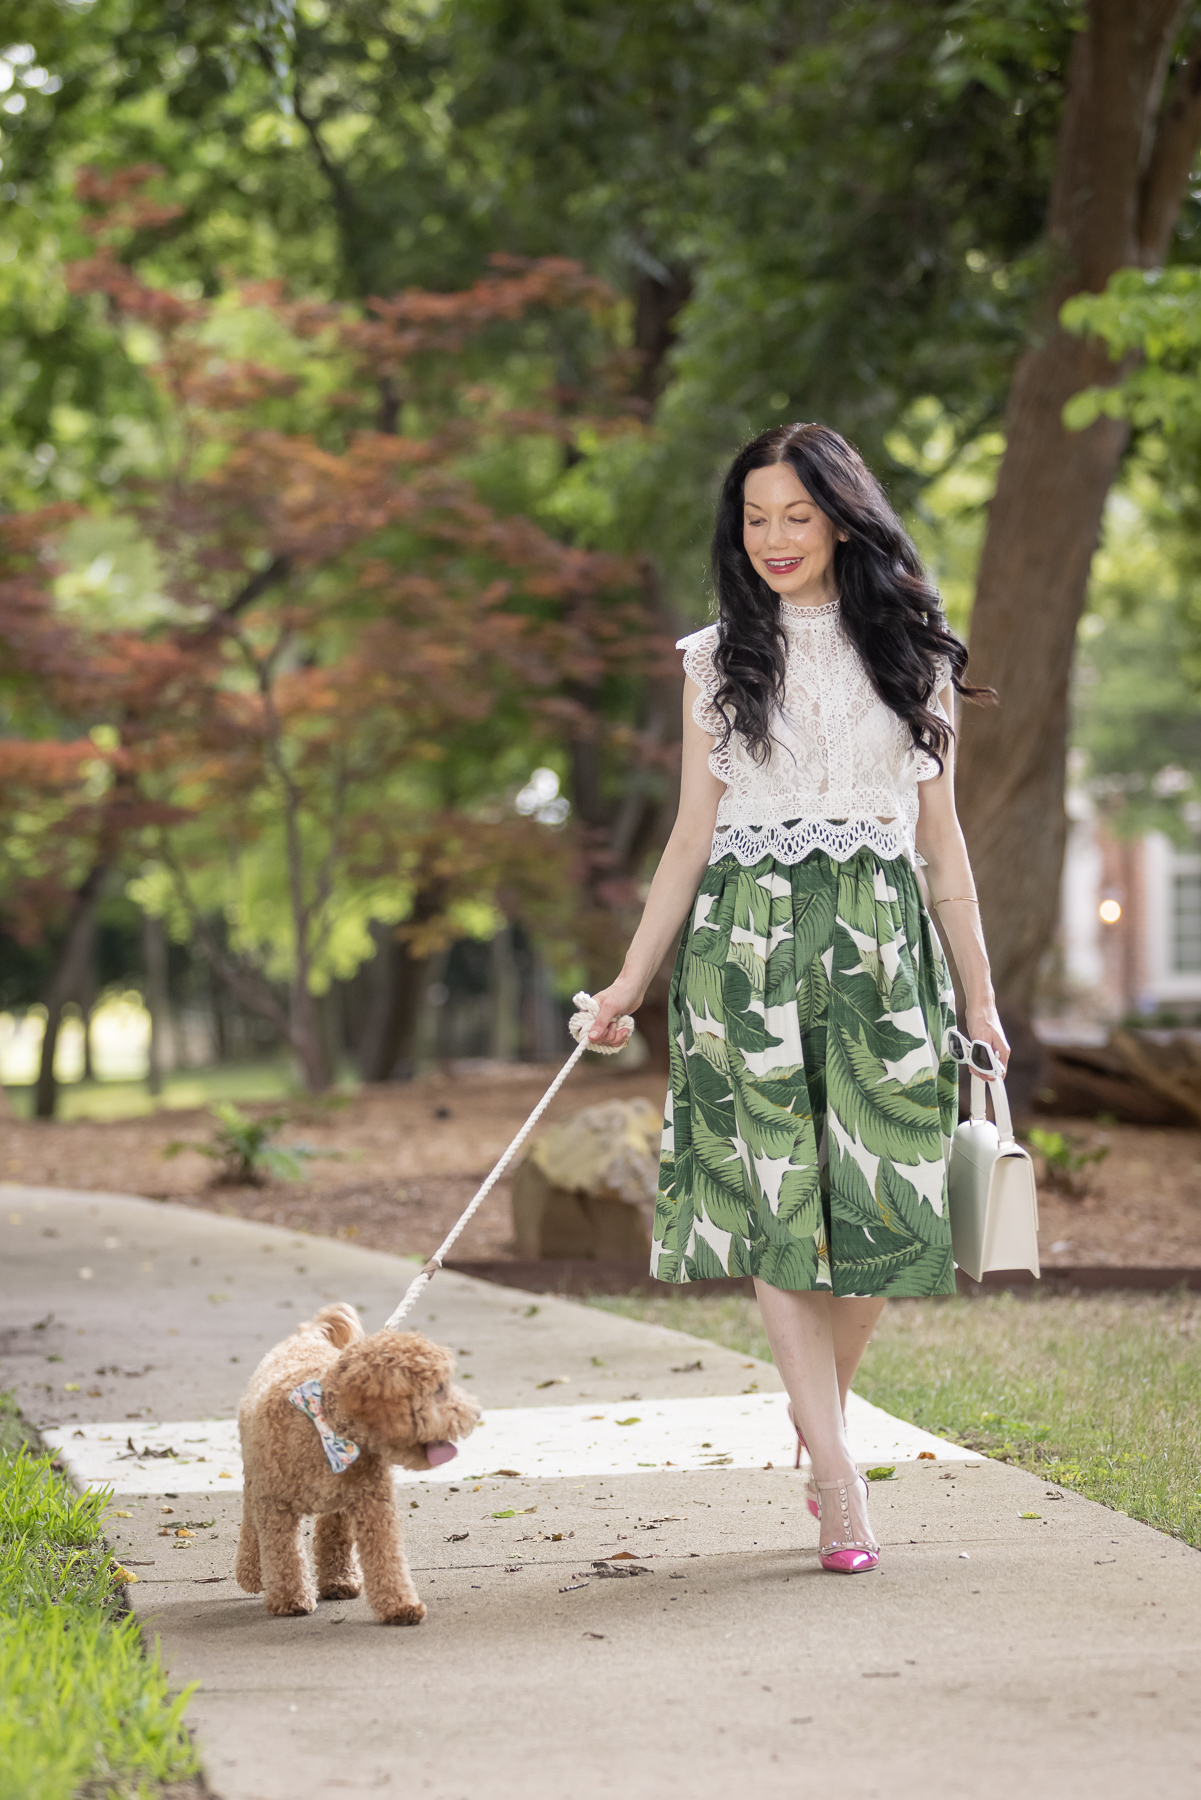 Palm Print Skirt, White Lace Top, Pink Pumps, Mini Goldendoodle Puppy   Palm Print Skirt by popular Dallas fashion blog, Pretty Little Shoppers: image of a woman walking her dog outside and wearing a palm print skirt, lace cropped top, and pink heels.